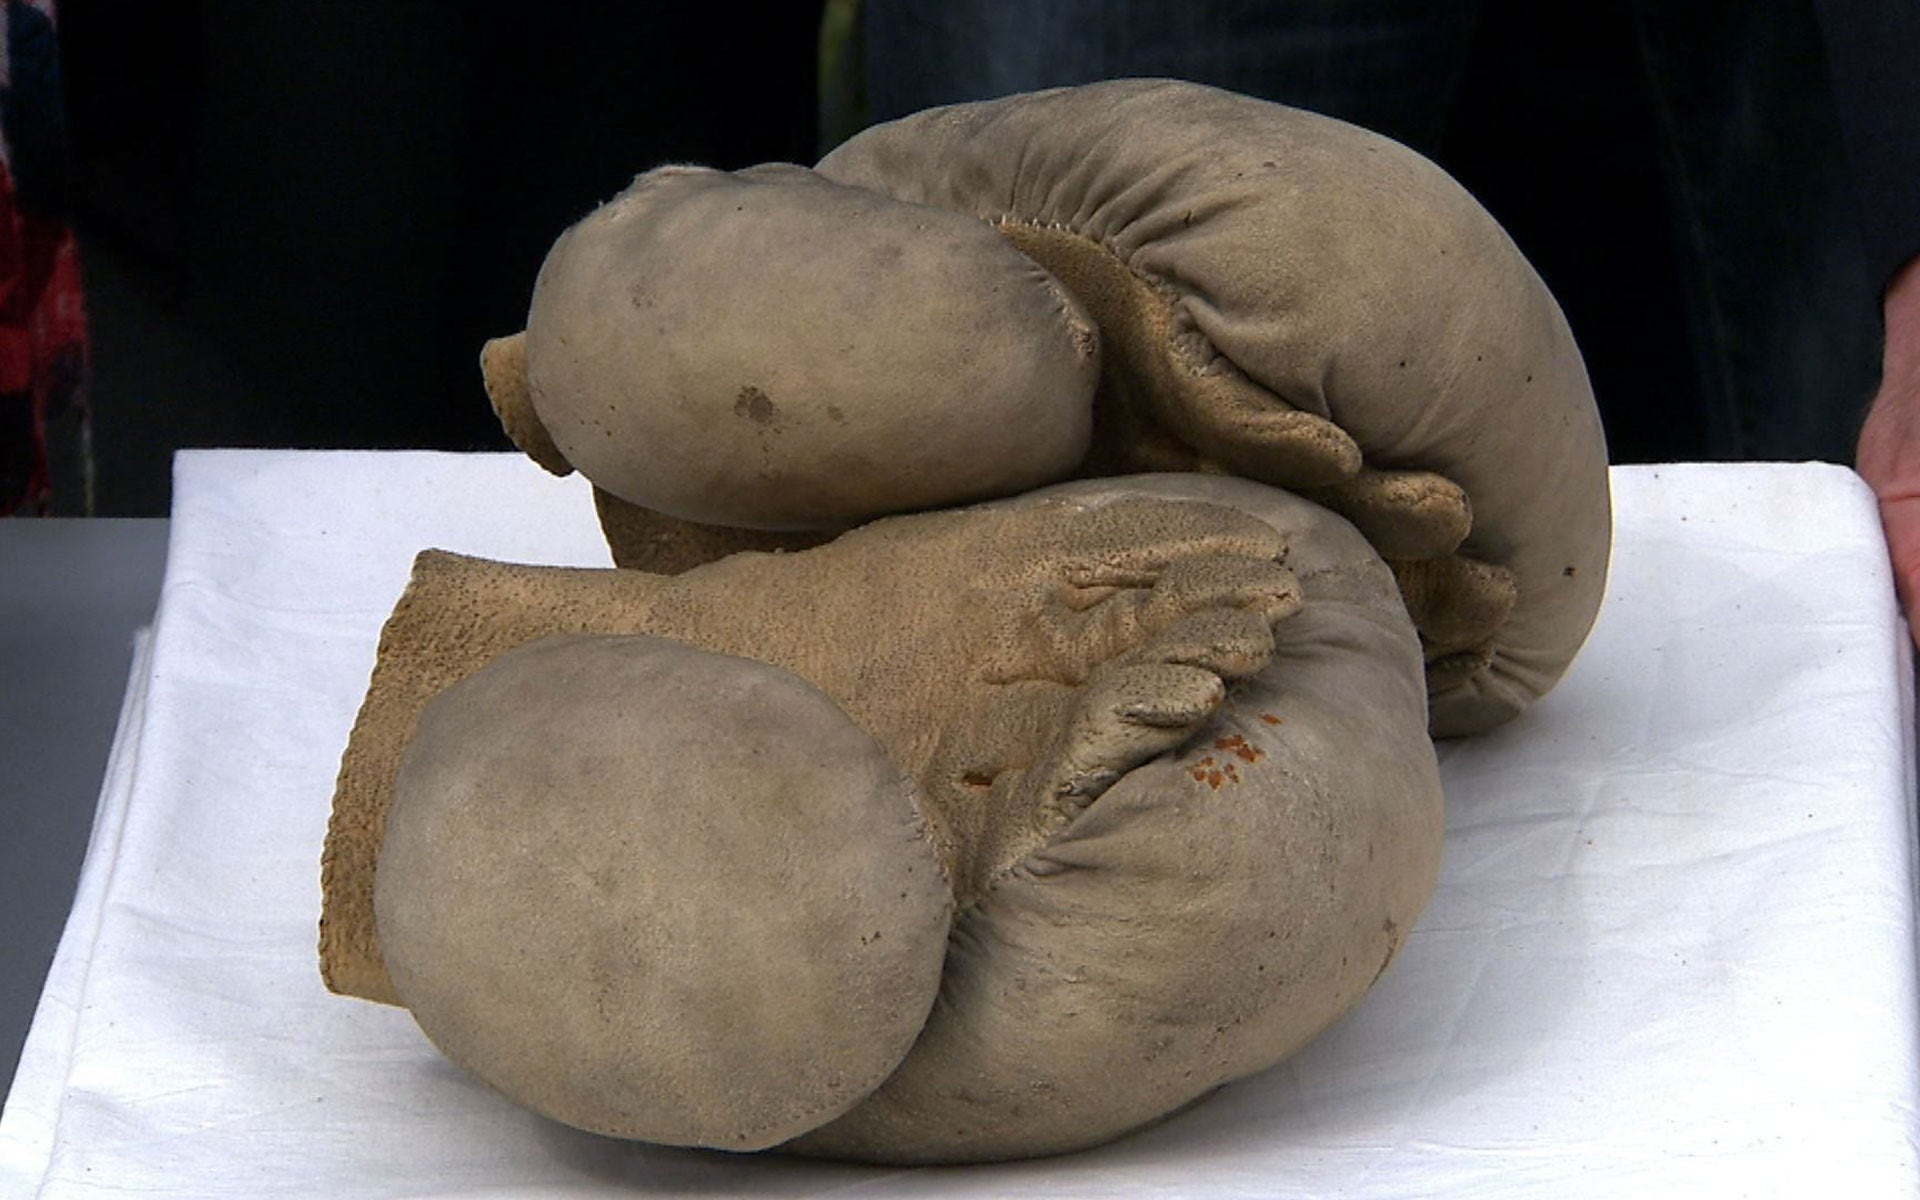 Lord Byron's Boxing Gloves - Early 19th Century